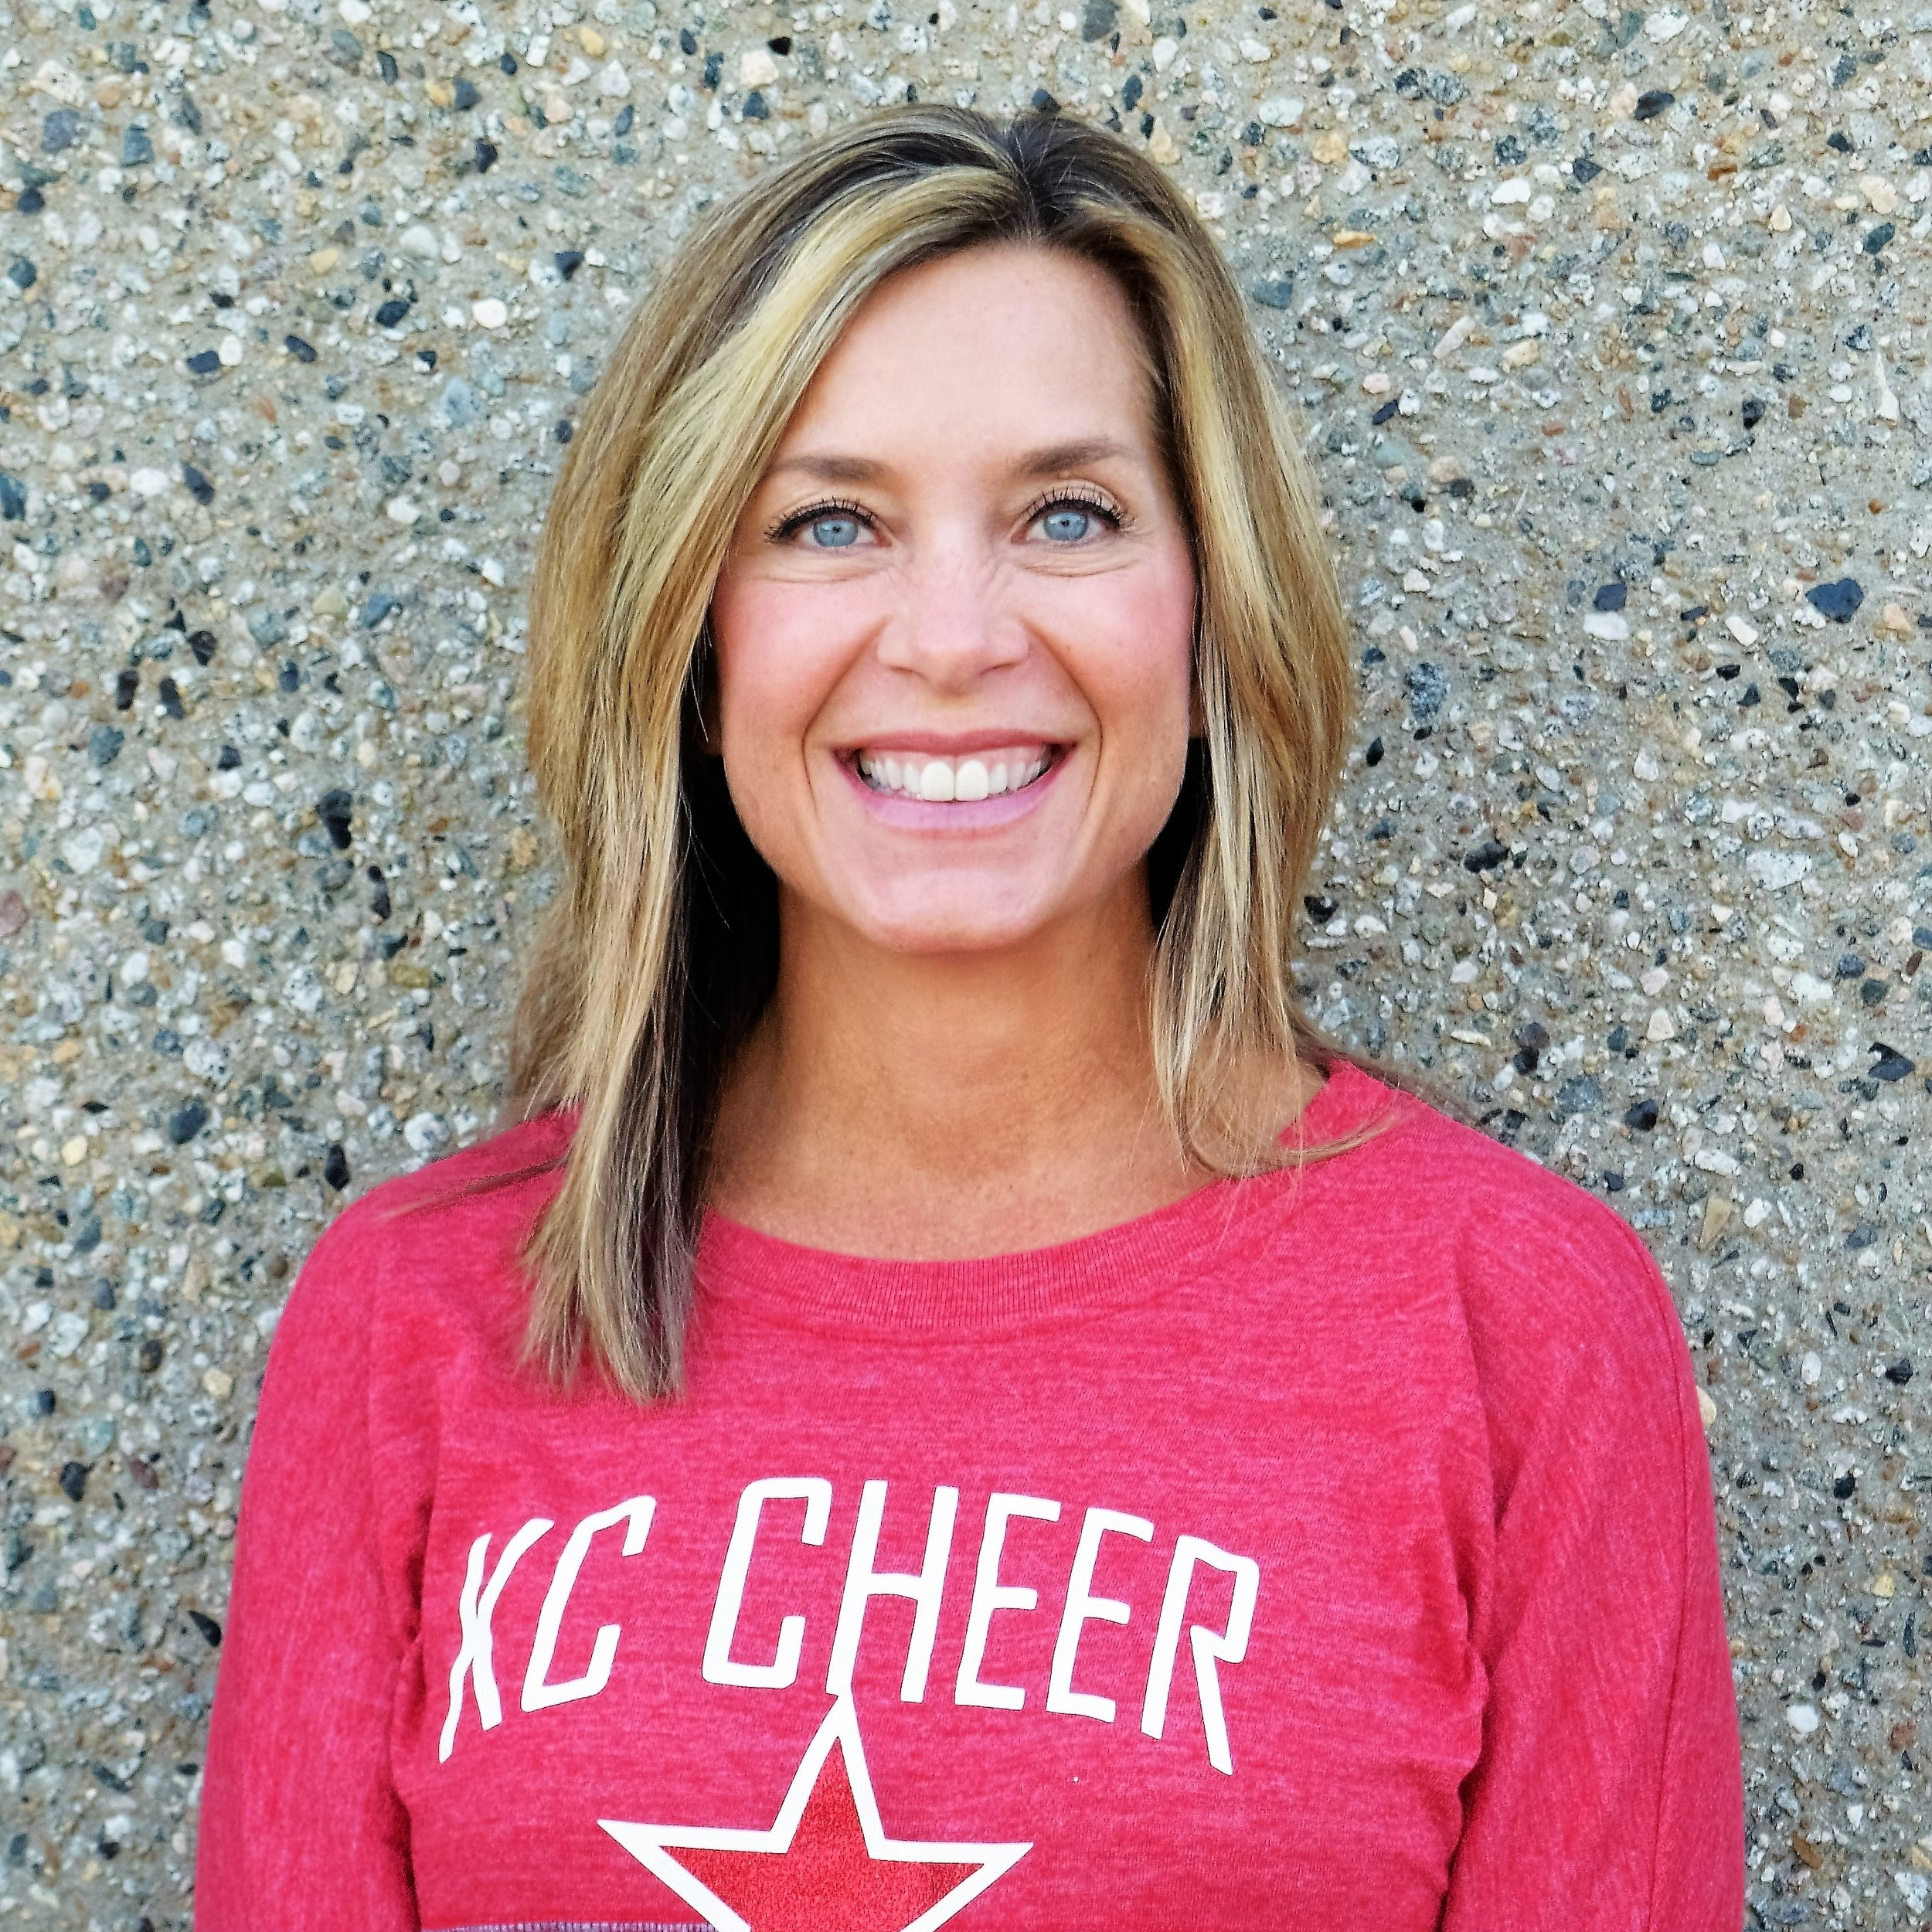 Kristi Whitney  Owner, Coach  Kristi is the co-owner of KC Cheer. She and her husband Michael graduated from Kansas State University. Kristi works with boys and girls of all ages in the gym, and is the primary contact for parent information and allstar program information. From the youth kids on Fual all the way to the level 5 teams, Kristi is there to teach them to have the confidence they need to perform to the best of their abilities. Kristi is a mom to Harrison, 23 and Ashleigh, 21.  Contact Kristi